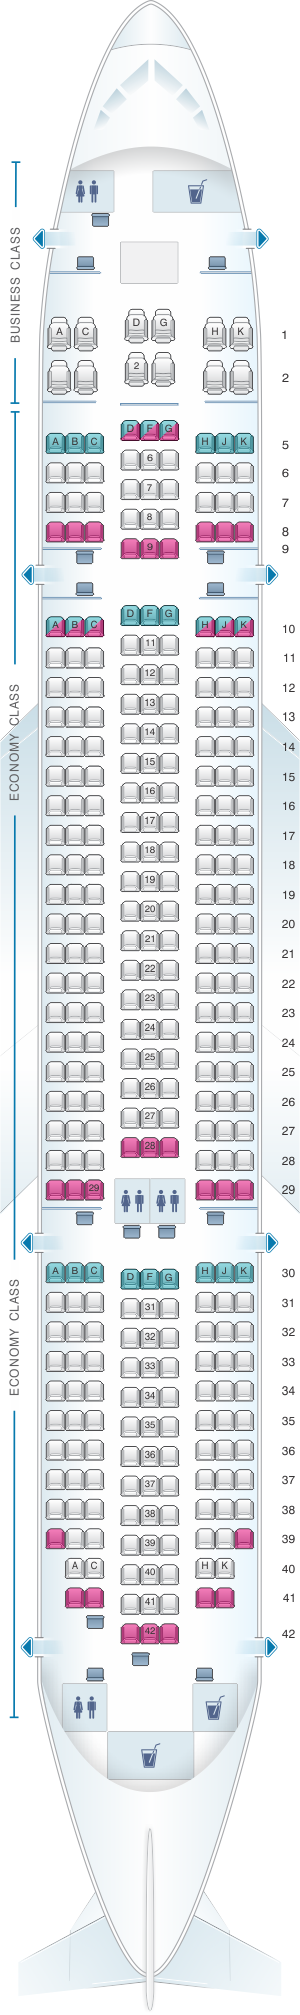 Seat map for ANA - All Nippon Airways Boeing B787-8 domestic